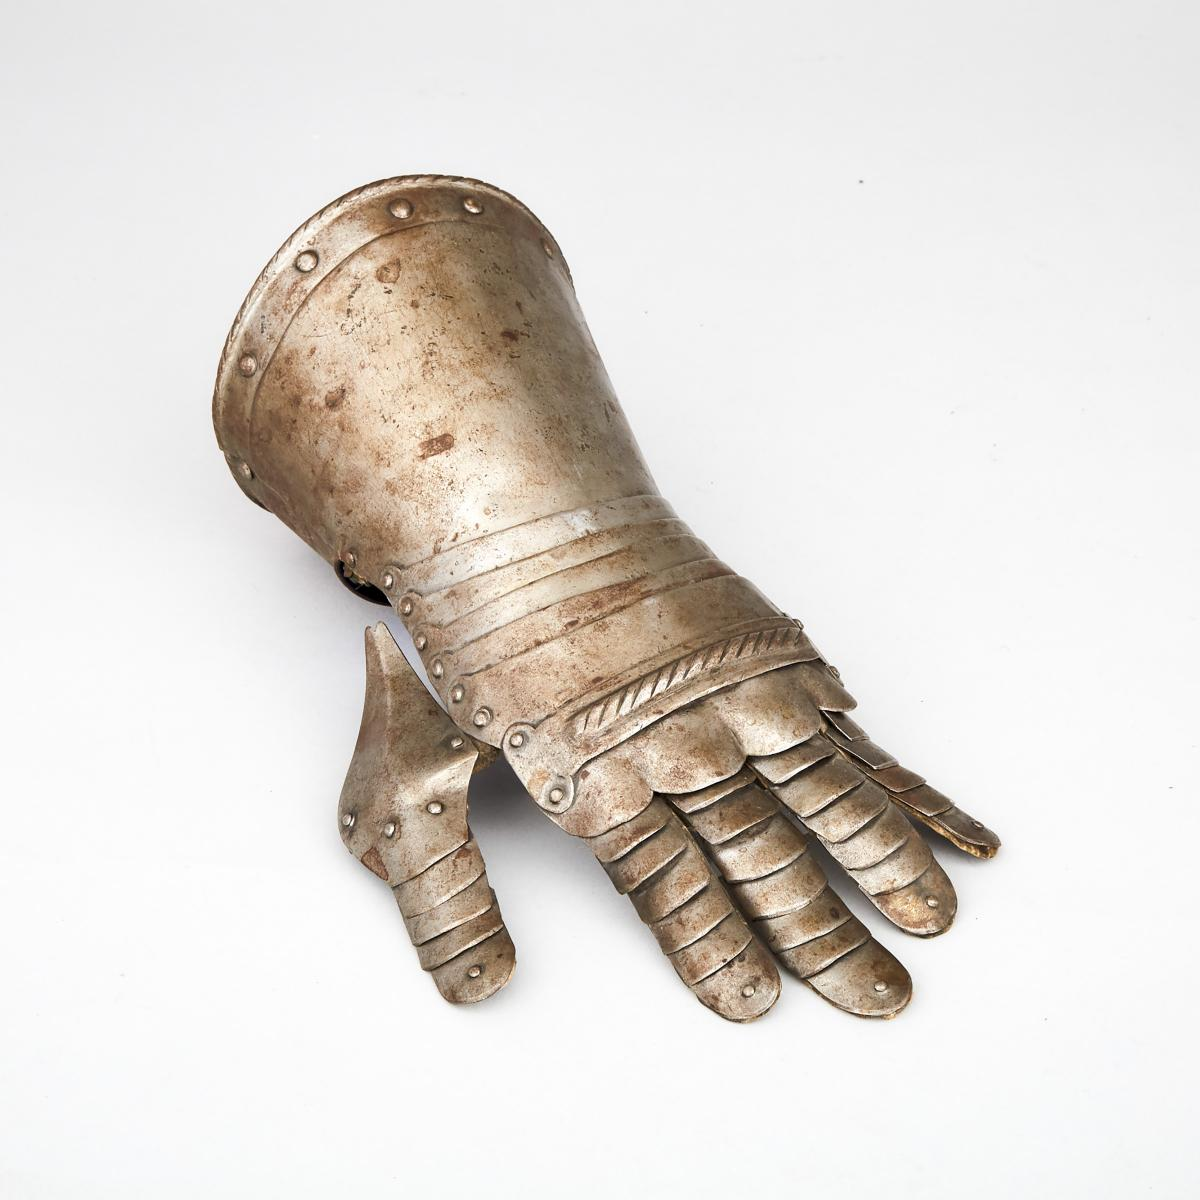 German Mid 16th century Style Left Hand Gauntlet, 19th century, length 12 in — 30.5 cm